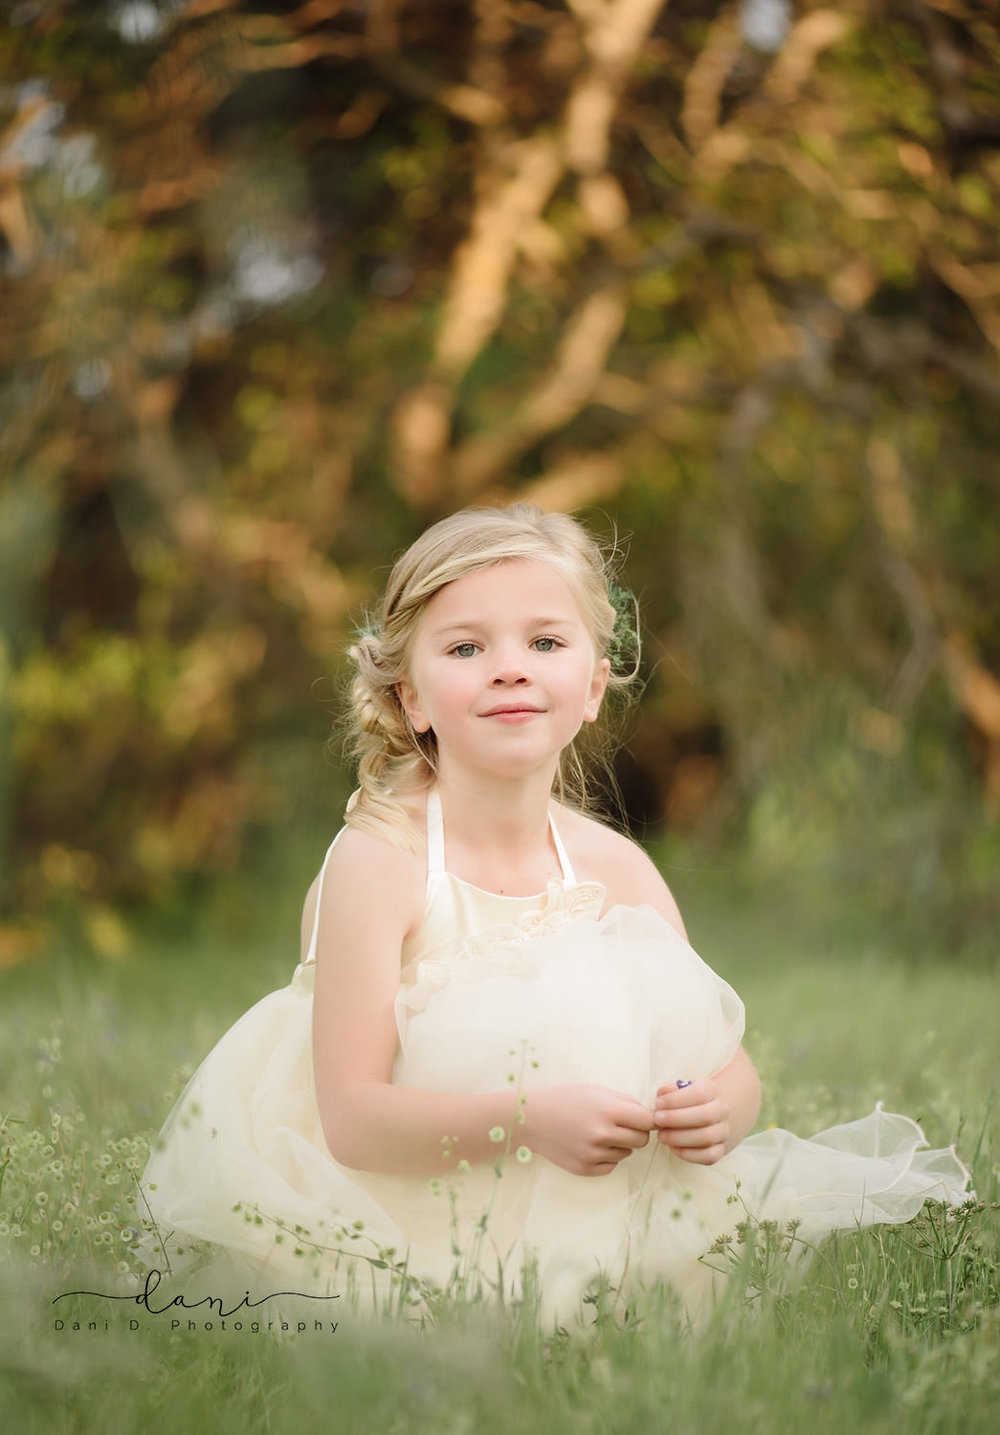 Child model Brynn - Northern California child and family photographer